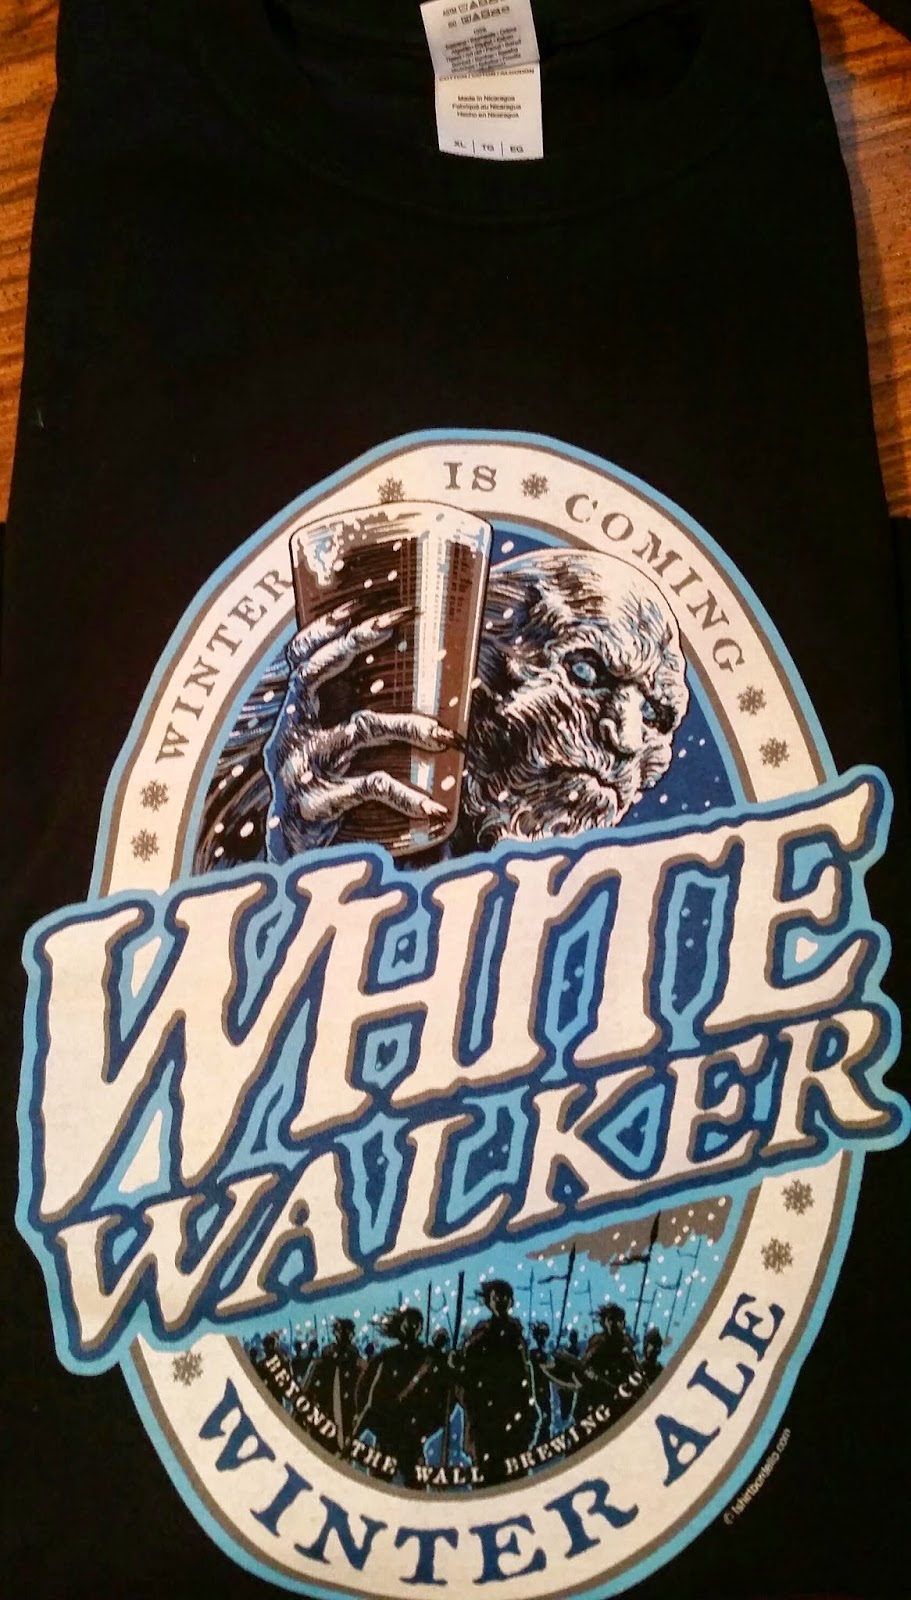 Game of Thrones white walker winter ale t-shirt